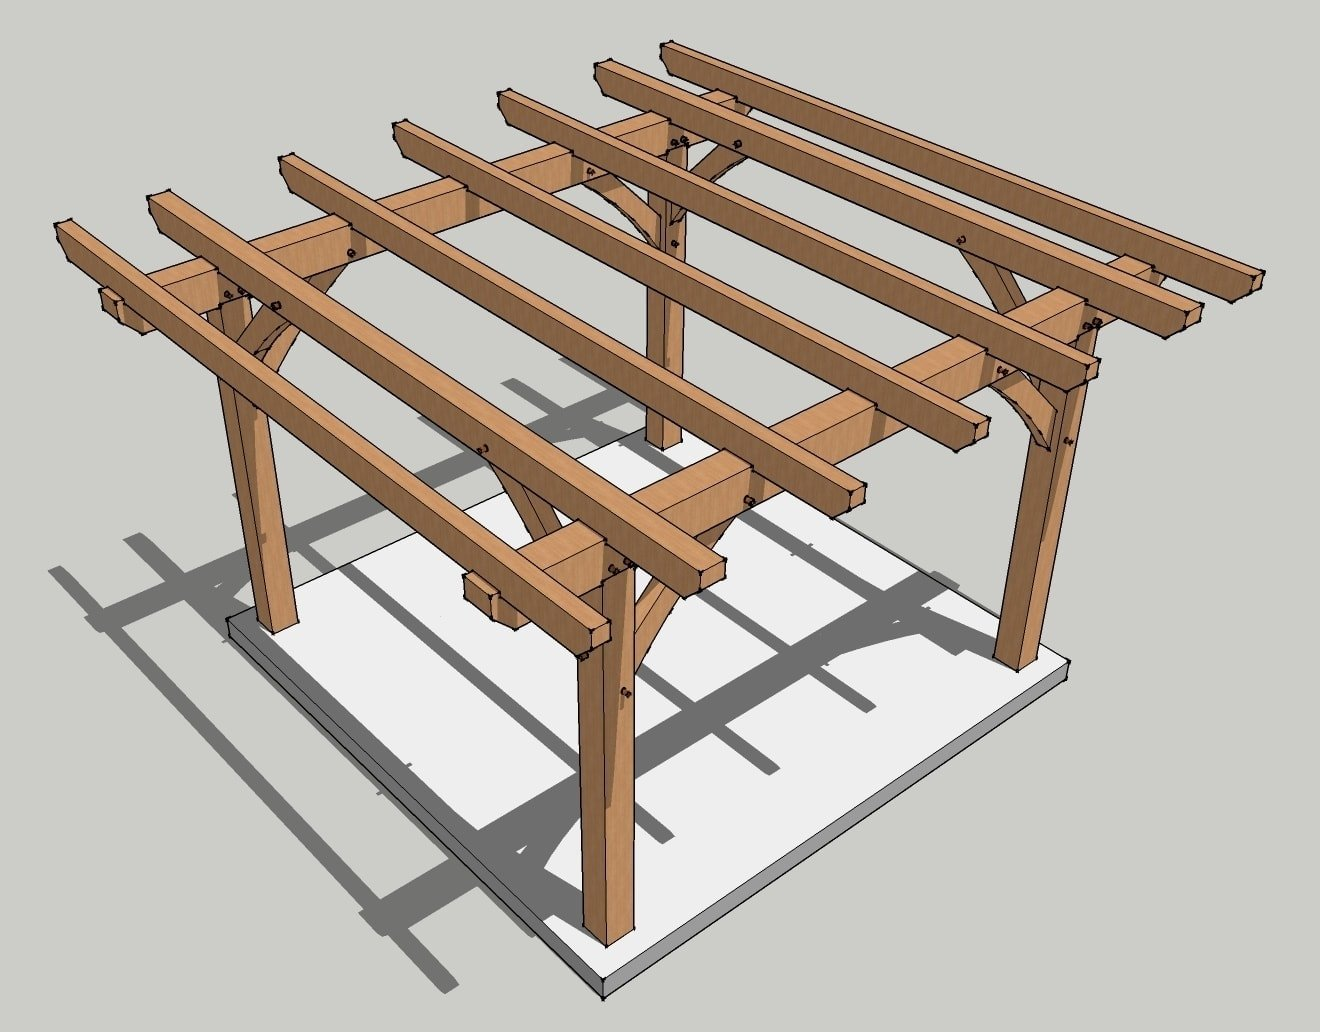 12x12 pergola plans outdoor goods for Frame plan